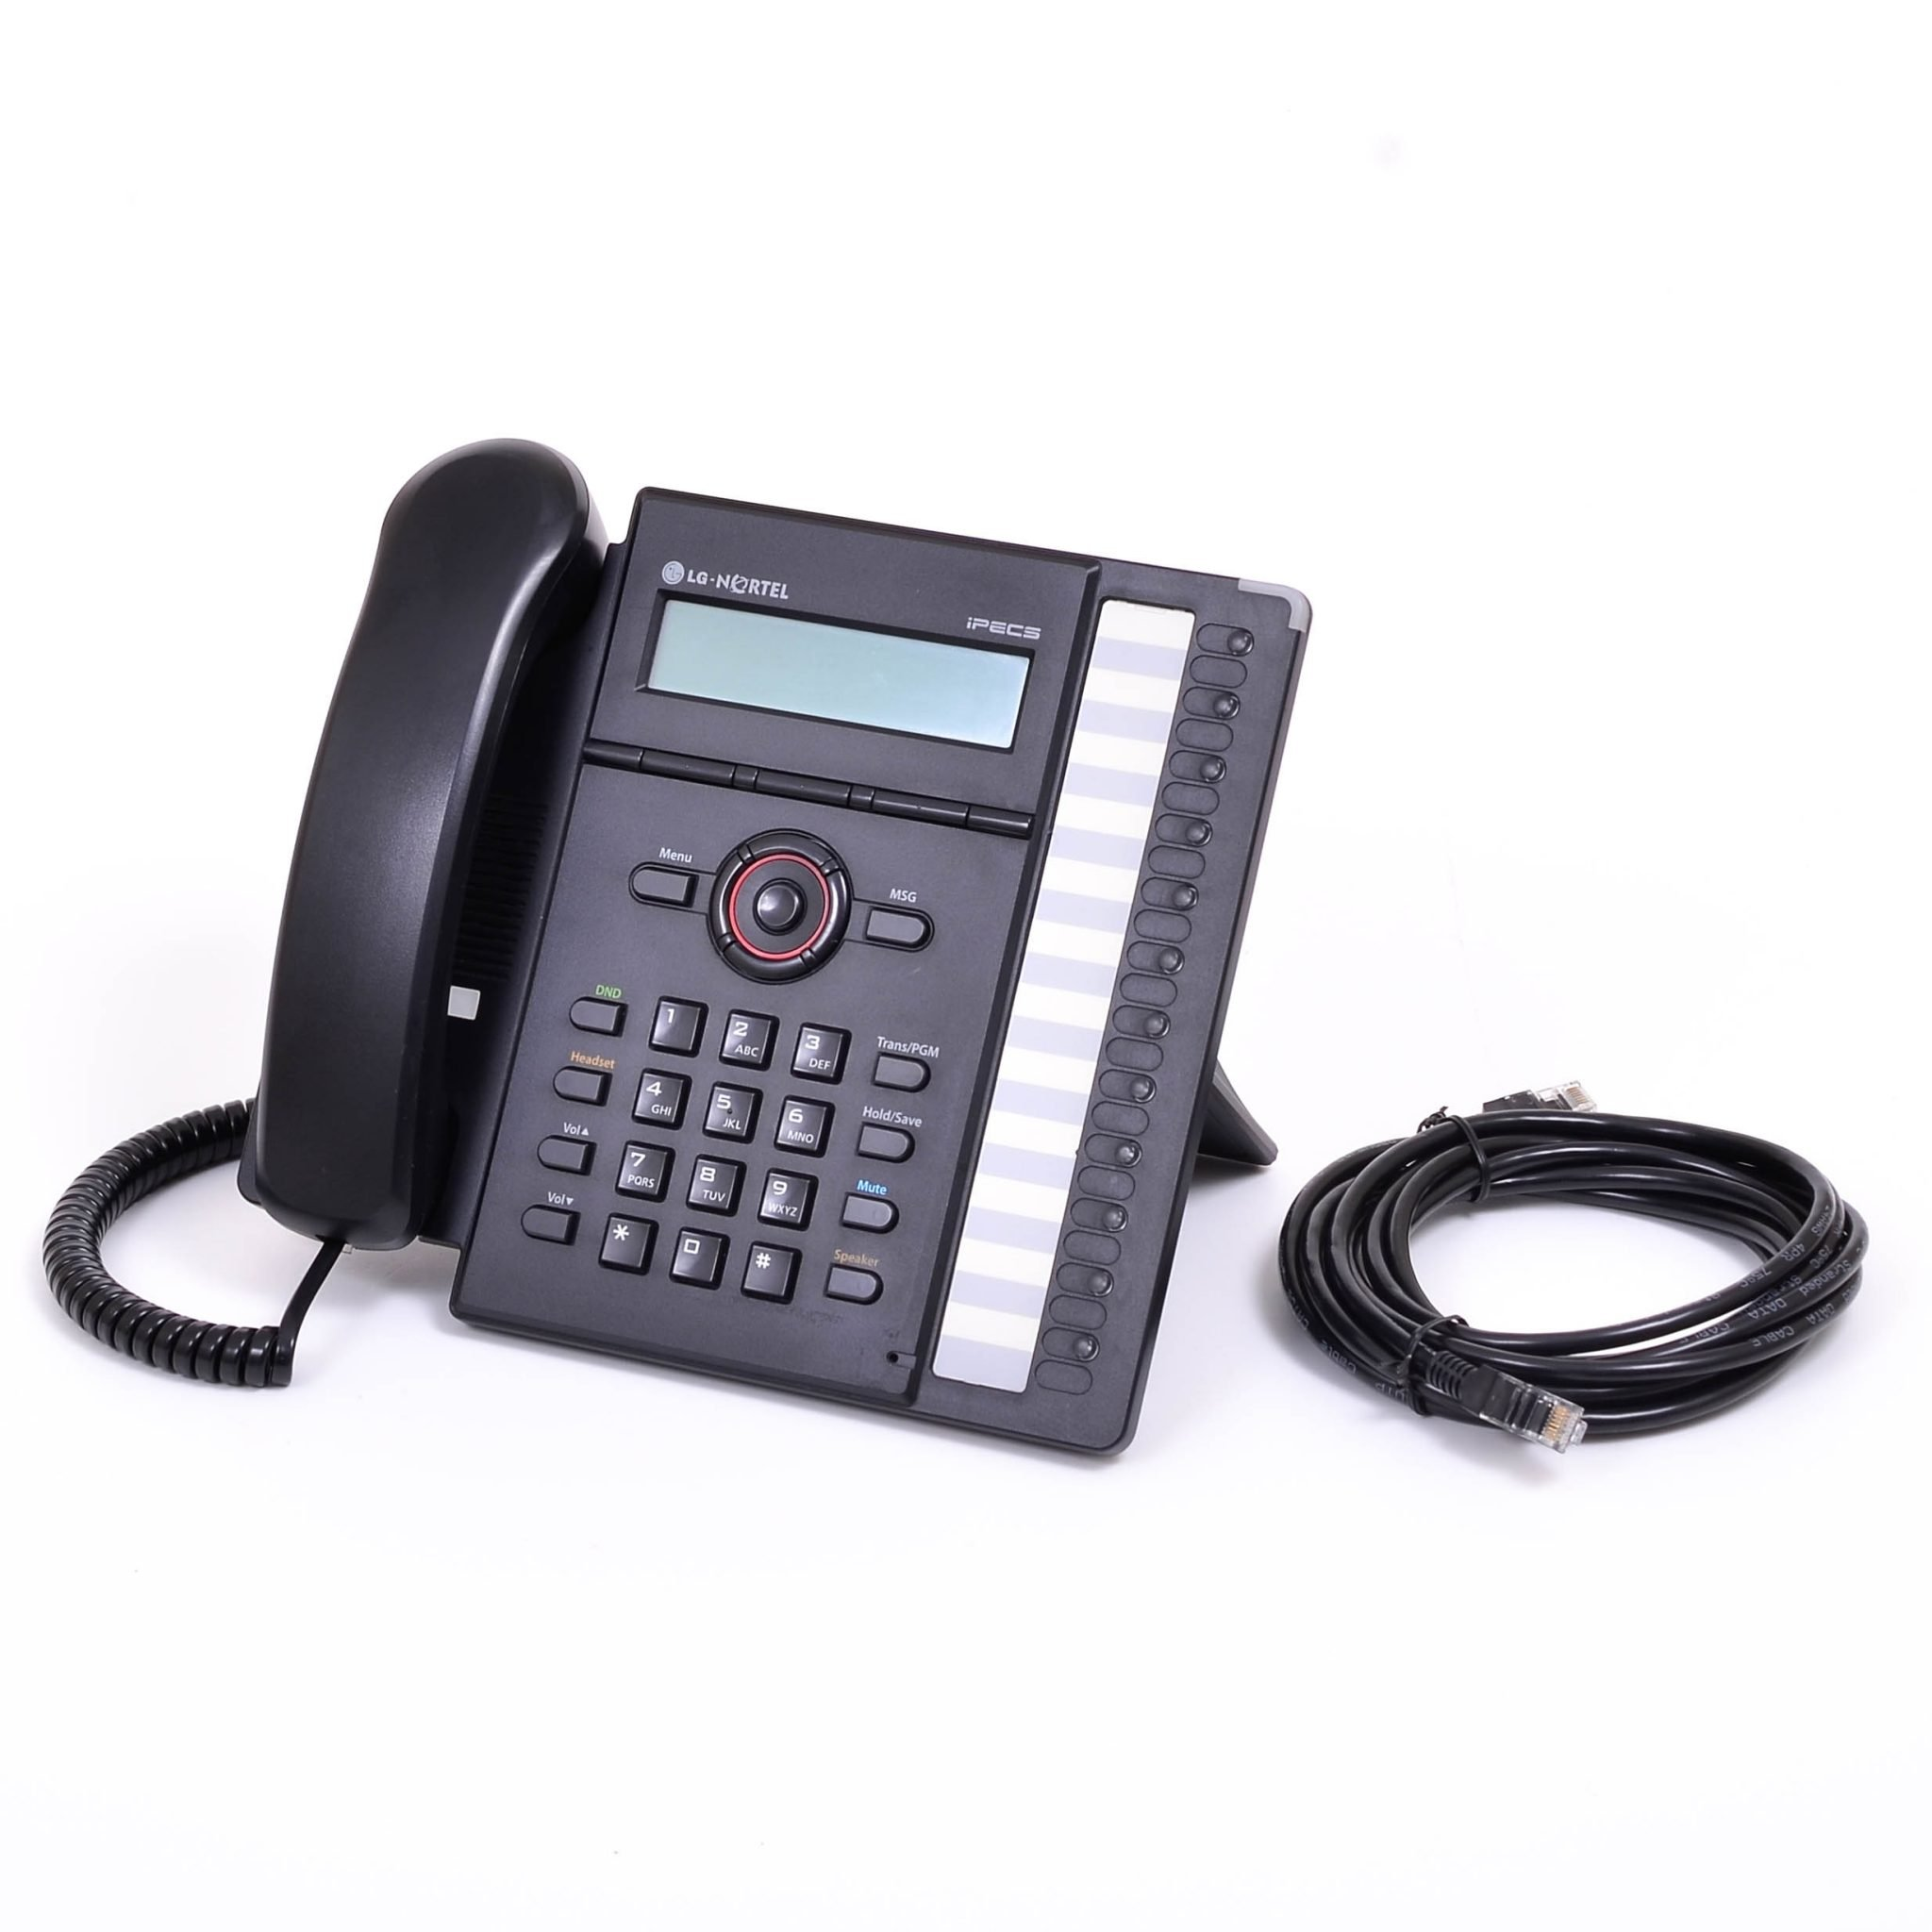 nortel meridian phone system manual